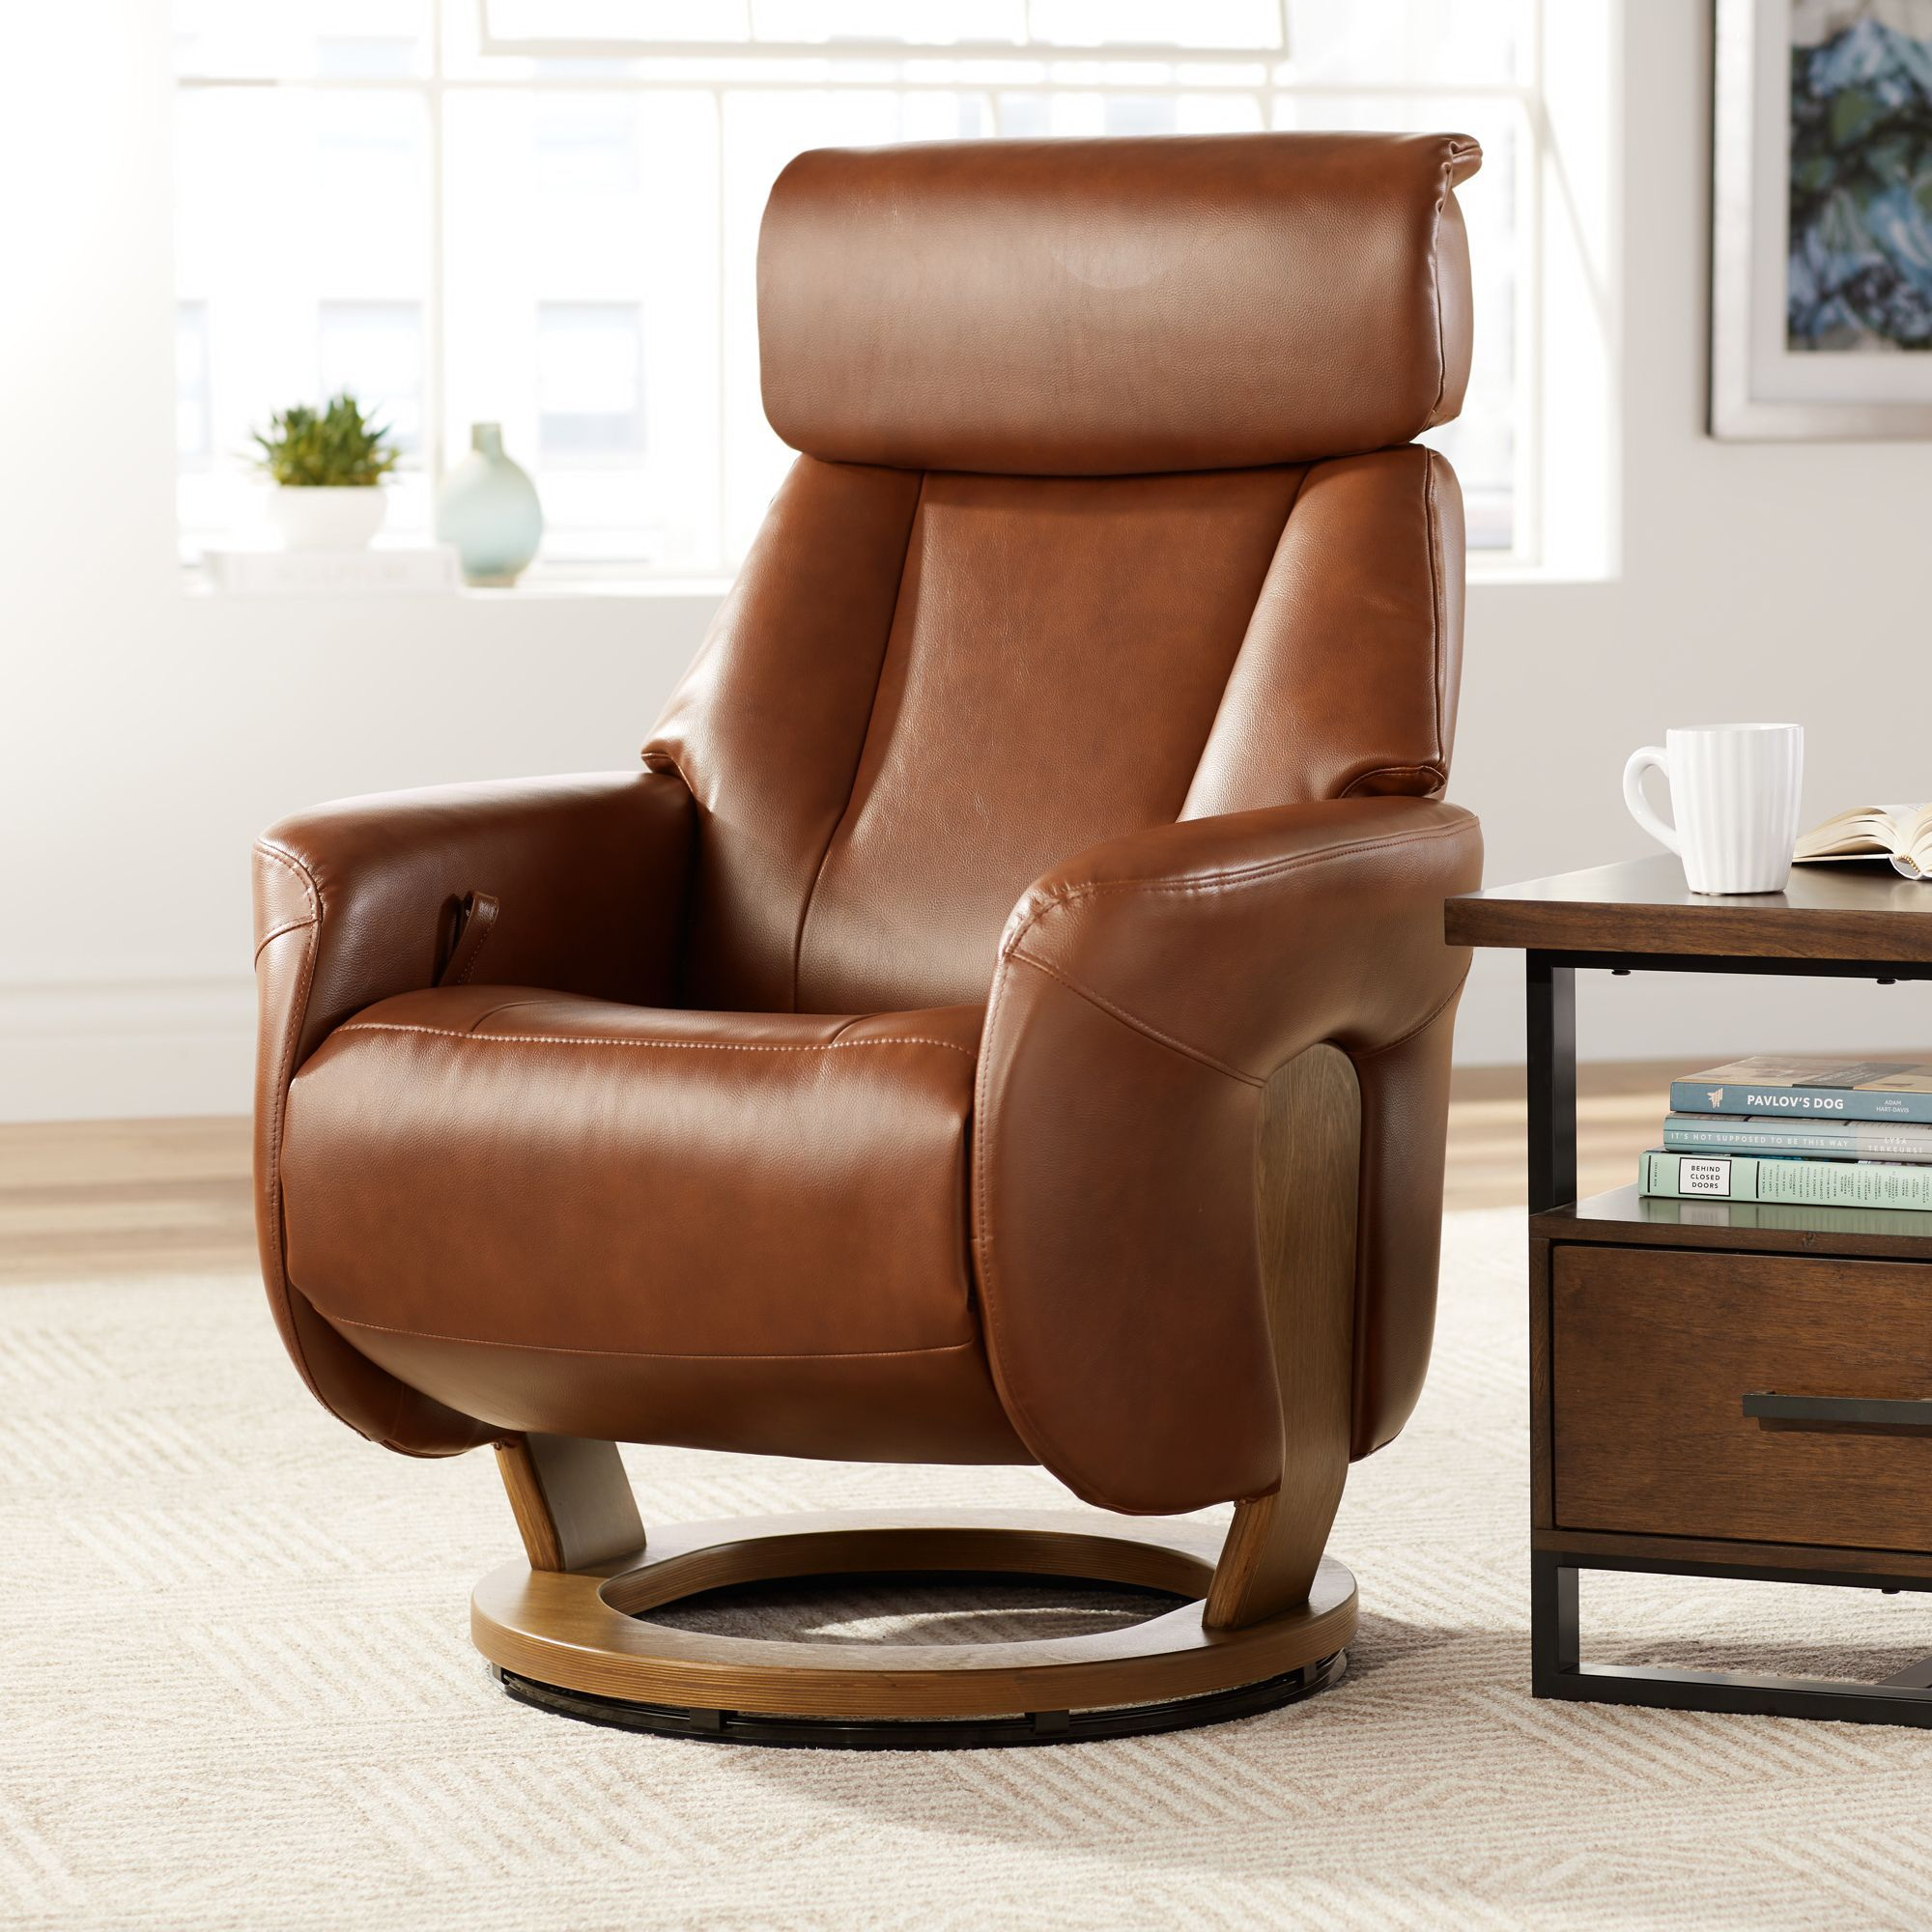 BenchMaster Augusta Brown Faux Leather 4Way Recliner